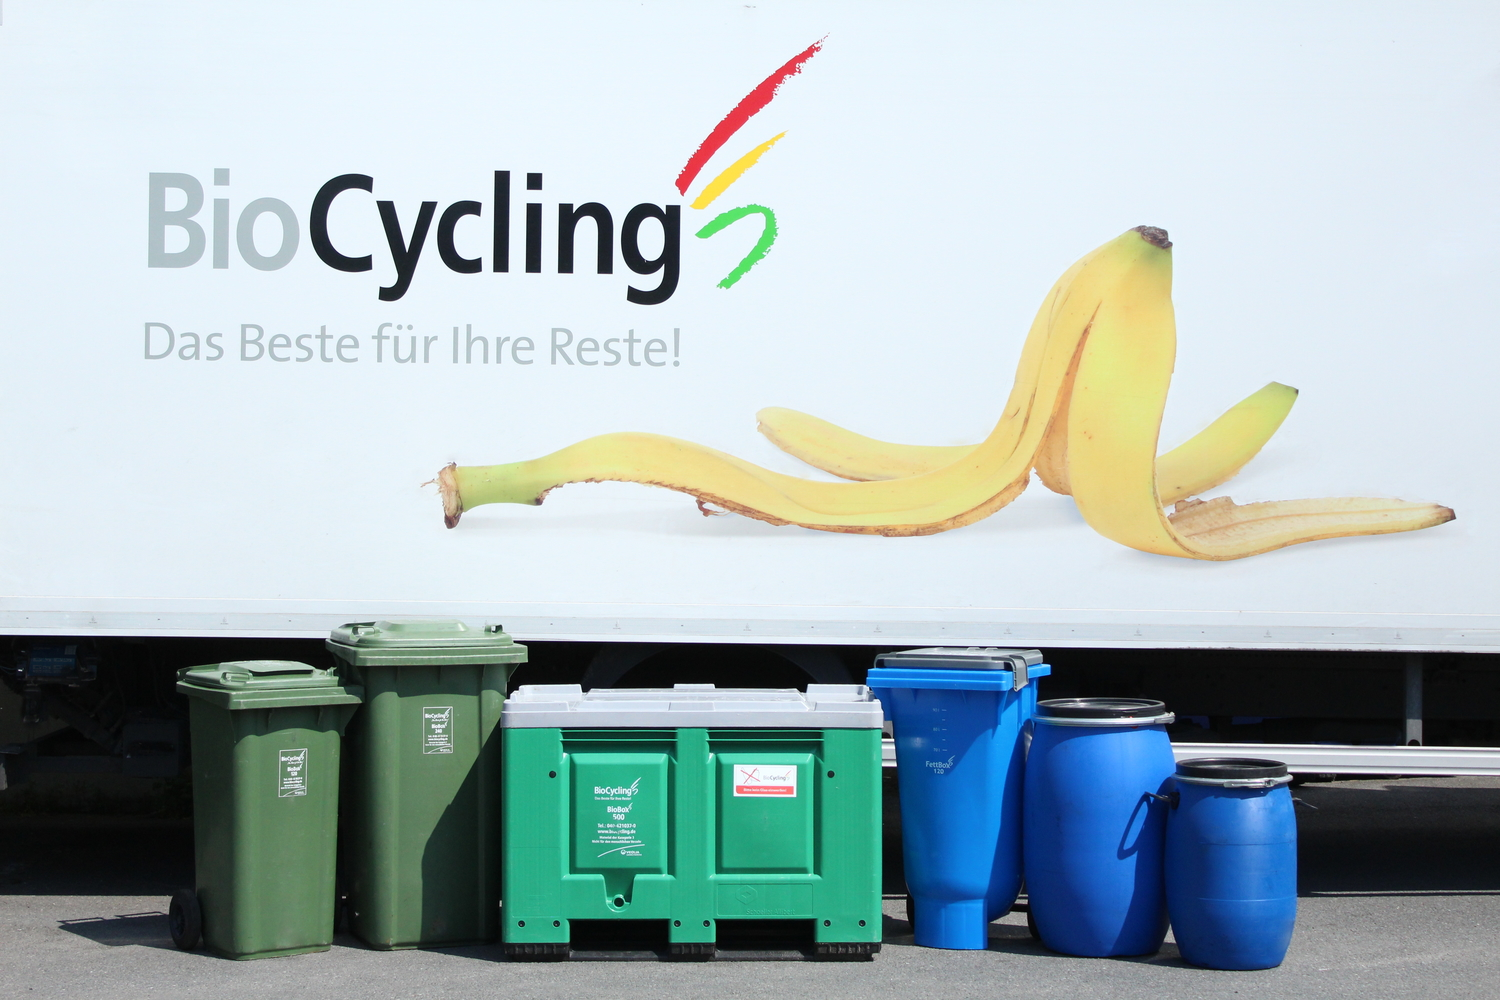 biocycling_behaelter_vor_lkw